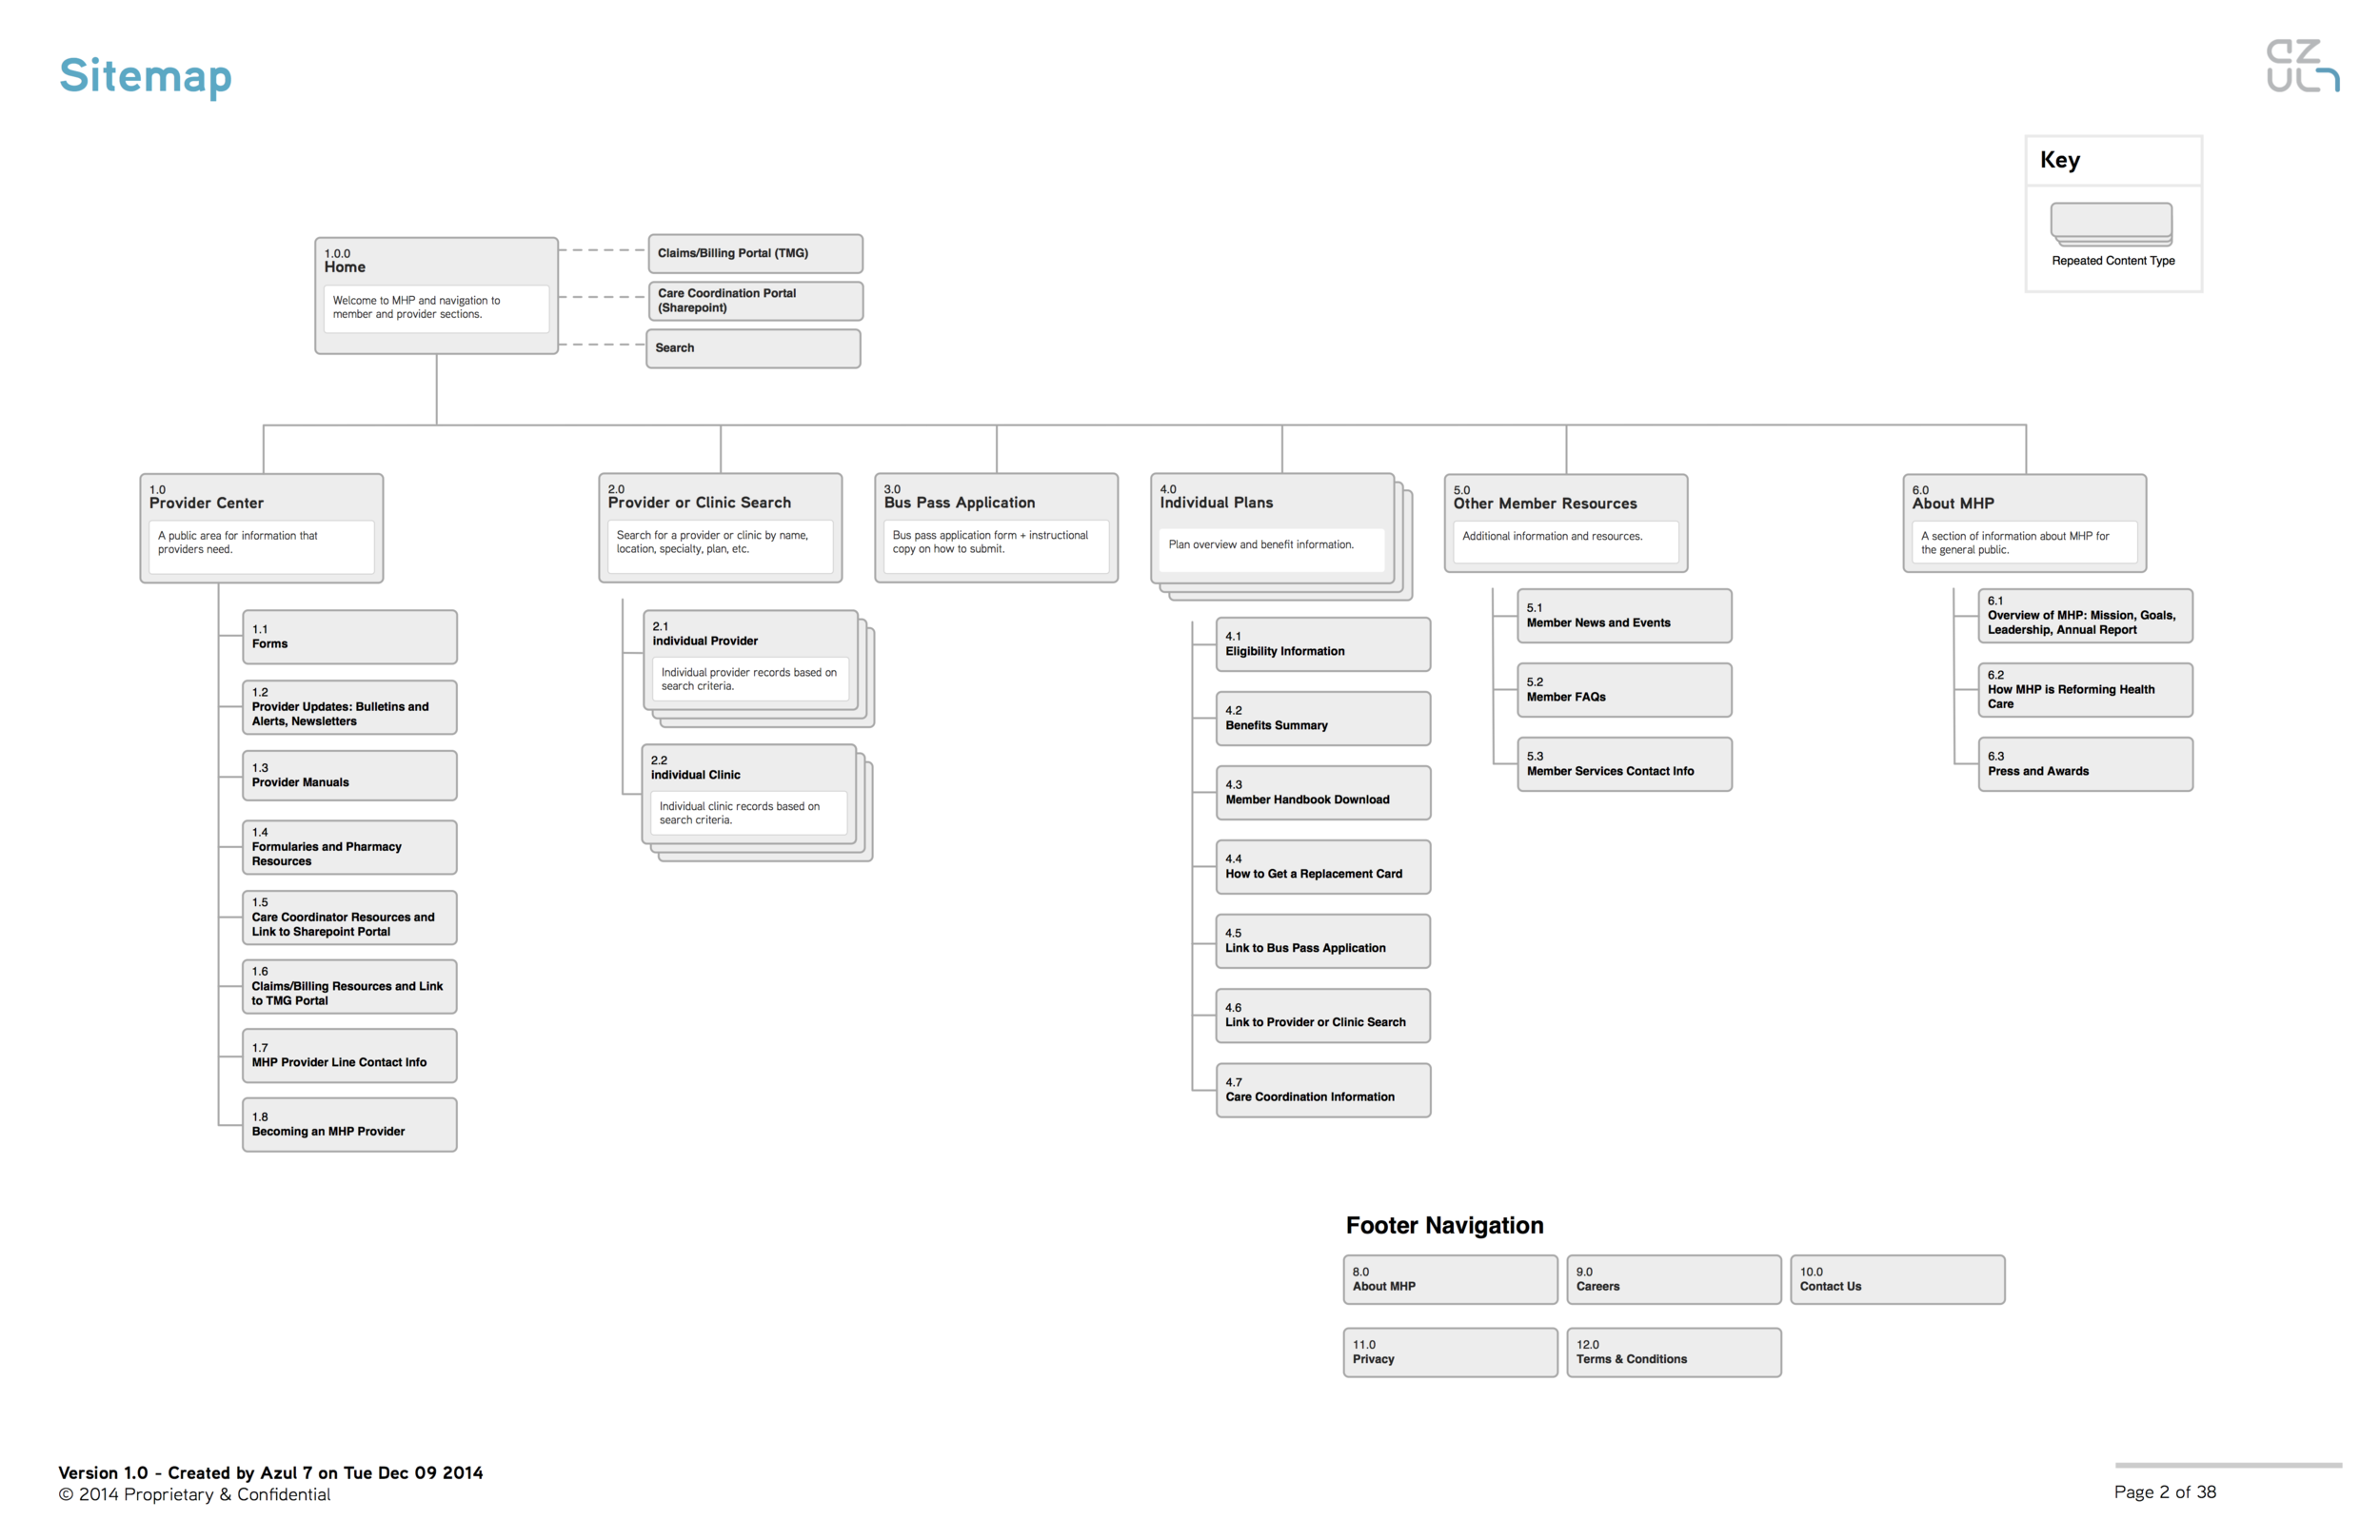 01-MHP-User-Flow-Overview.png